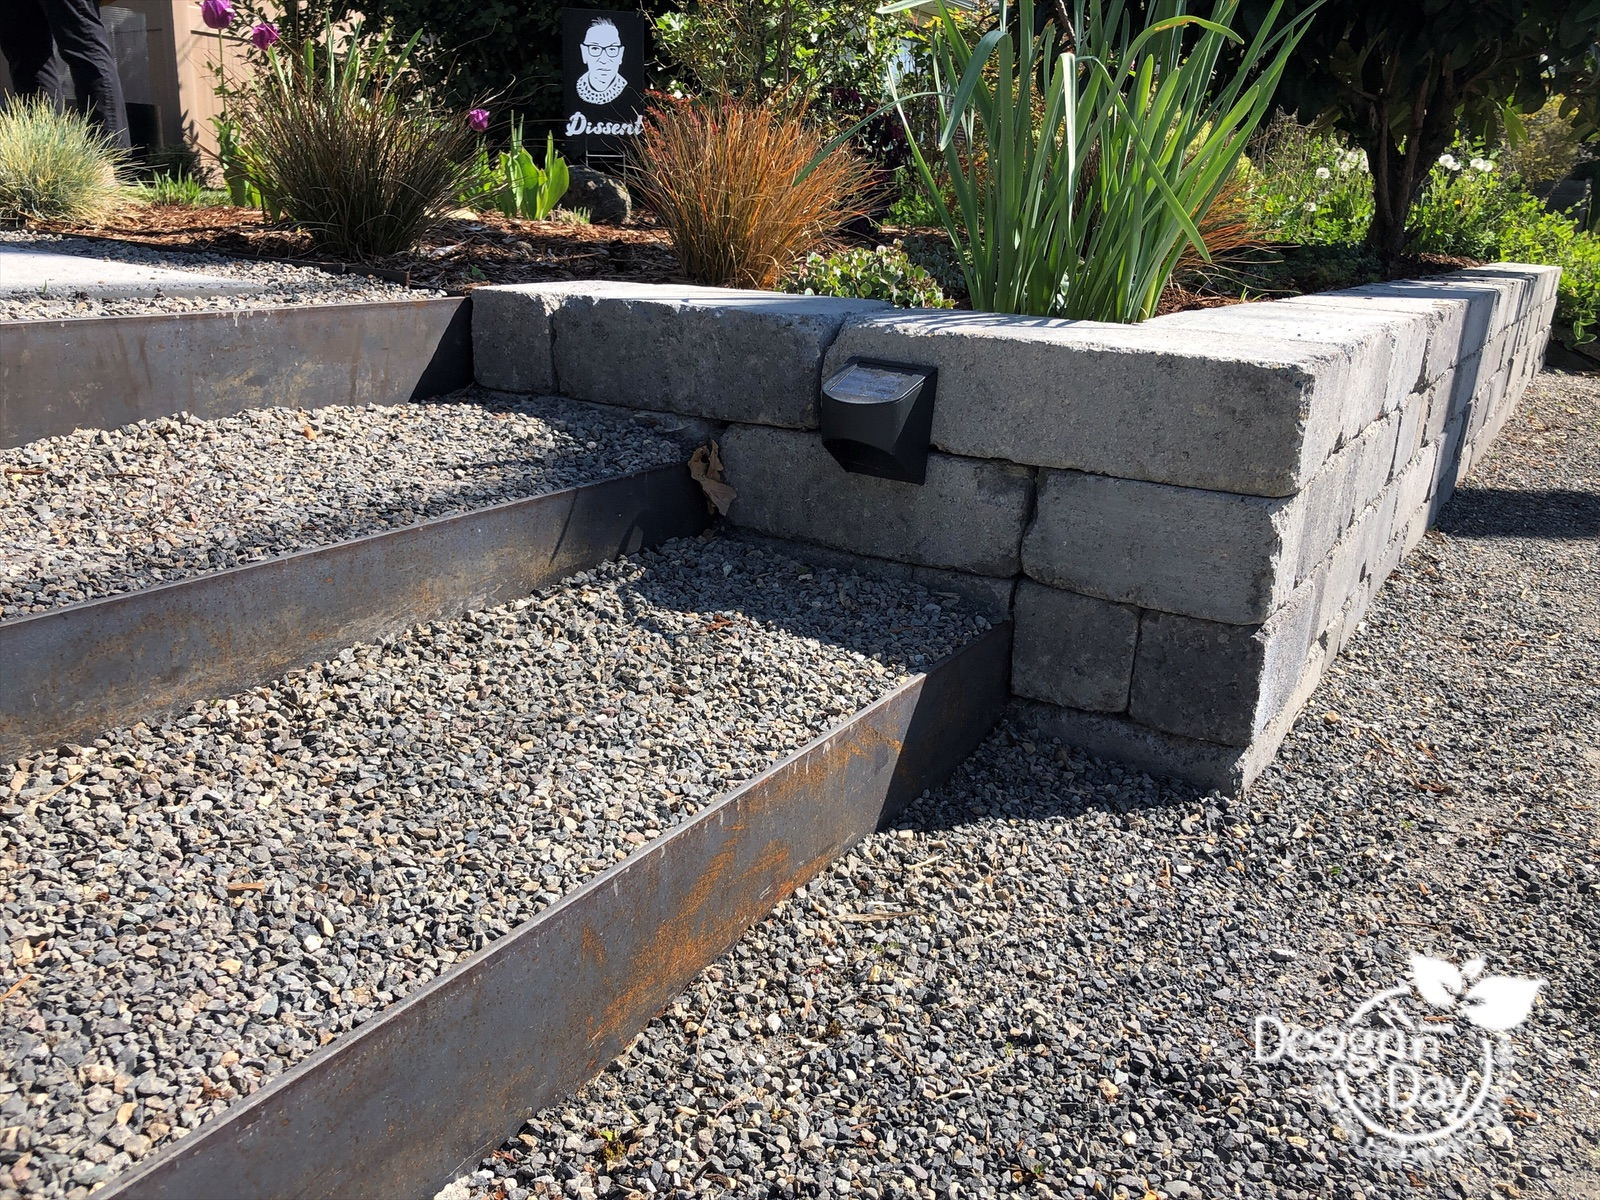 Modern landscape design adds steps with steel risers to Kenton front yard in Portland